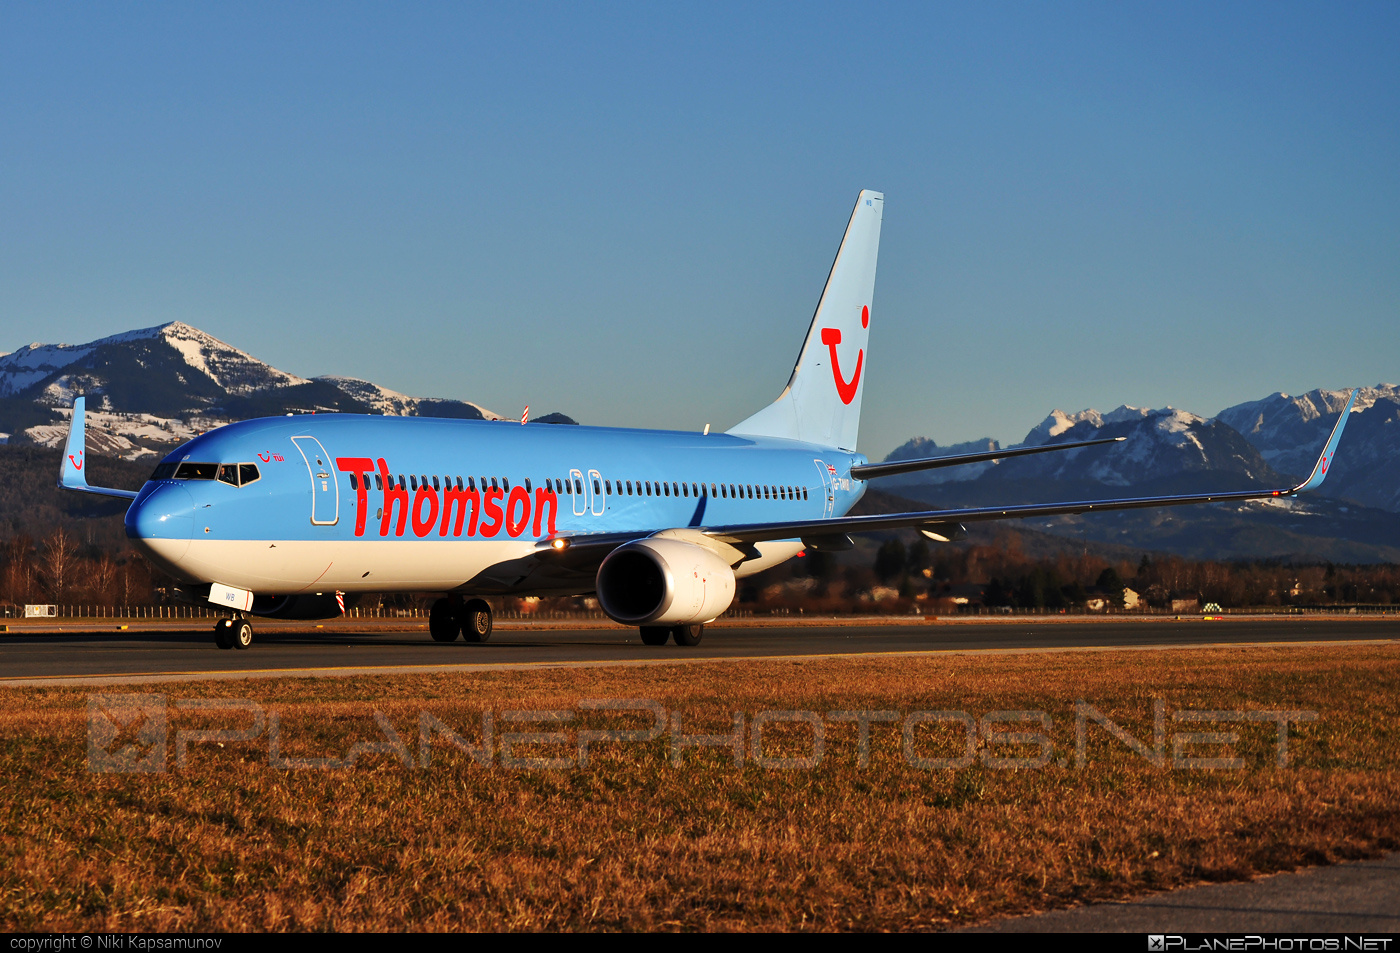 Boeing 737-800 - G-TAWB operated by Thomson Airways #b737 #b737nextgen #b737ng #boeing #boeing737